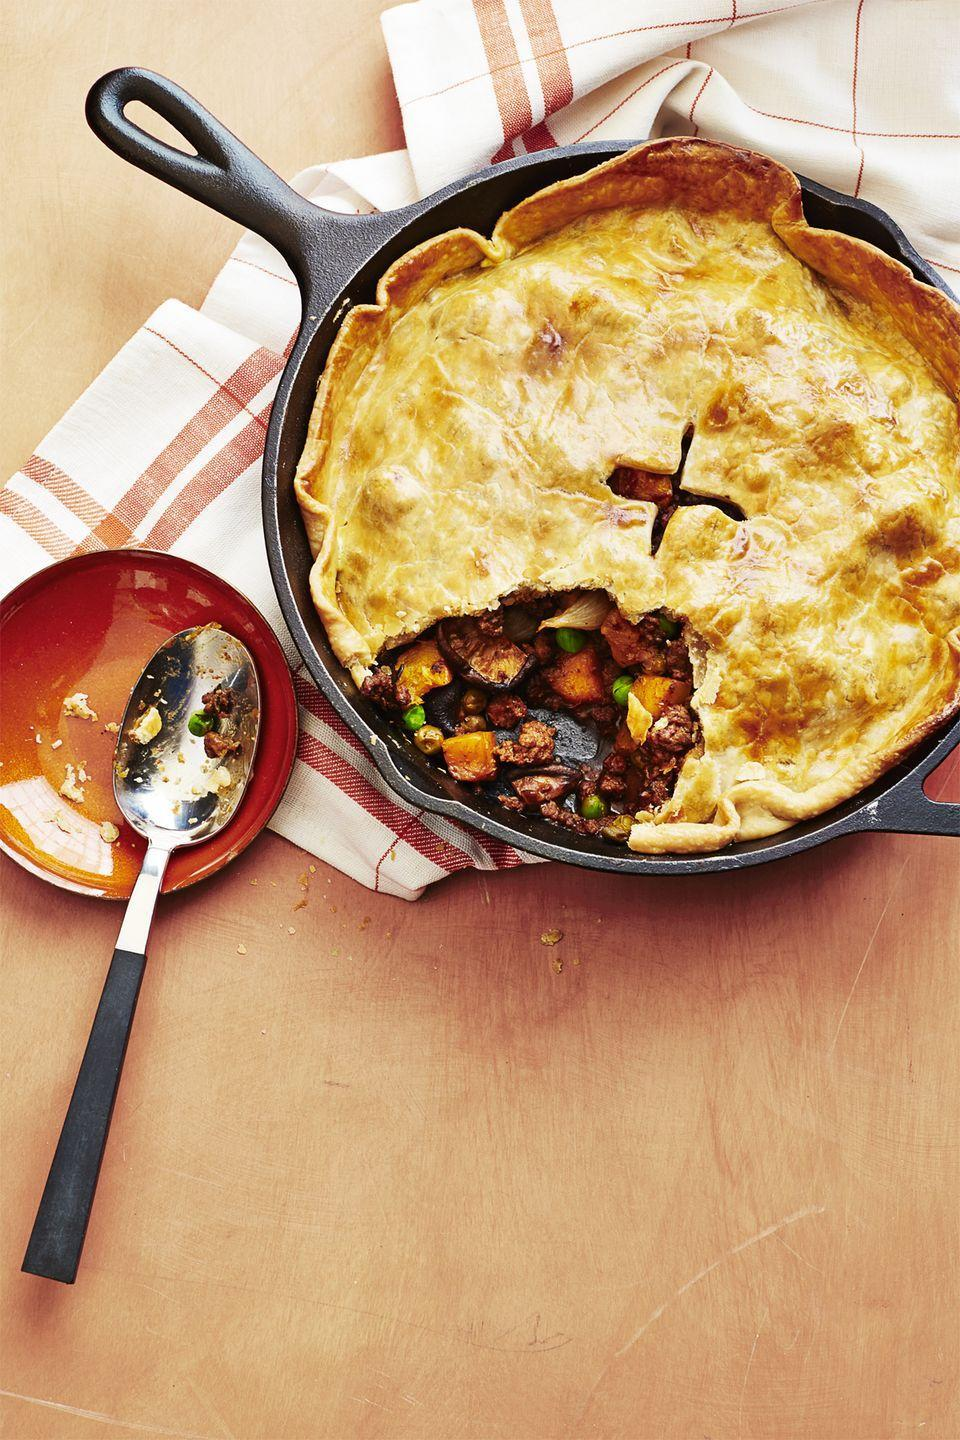 "<p>This flavorful one-pan beef pie is easy to make (a store-bought crust helps), but is hearty, and fancy enough to feel special.</p><p><strong><a href=""https://www.countryliving.com/food-drinks/recipes/a34529/beef-stout-skillet-pie-recipe-wdy0914/"" rel=""nofollow noopener"" target=""_blank"" data-ylk=""slk:Get the recipe"" class=""link rapid-noclick-resp"">Get the recipe</a>.</strong></p><p><a class=""link rapid-noclick-resp"" href=""https://www.amazon.com/Lodge-Skillet-Pre-Seasoned-Ready-Stove/dp/B00006JSUA?tag=syn-yahoo-20&ascsubtag=%5Bartid%7C10050.g.34100795%5Bsrc%7Cyahoo-us"" rel=""nofollow noopener"" target=""_blank"" data-ylk=""slk:SHOP CAST IRON SKILLETS"">SHOP CAST IRON SKILLETS</a> </p>"